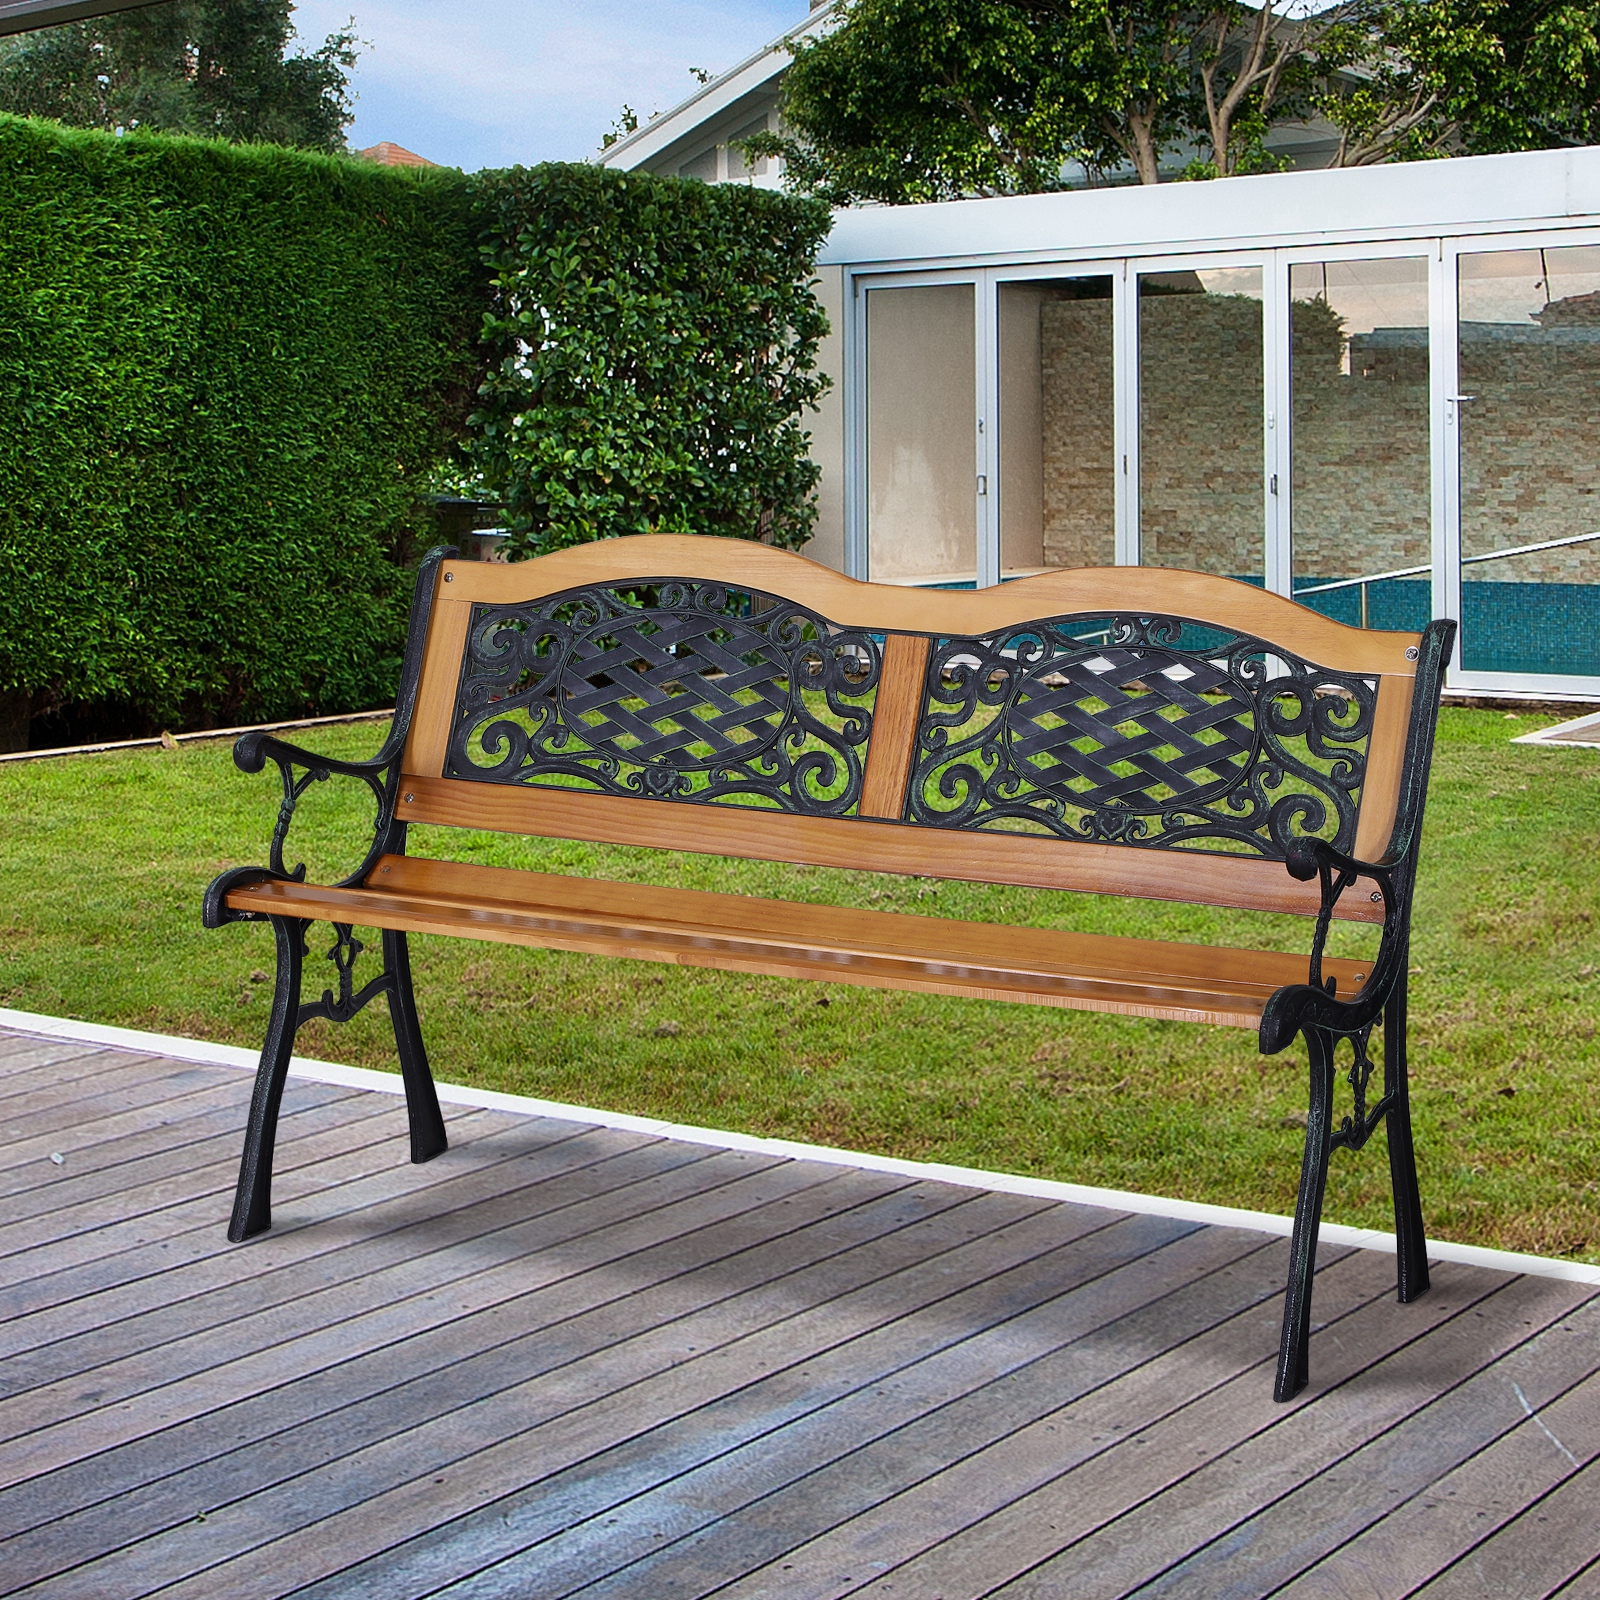 Ogród I Taras Cast Iron & Hardwood Classic Outdoor Garden With Regard To Madeline Vintage Bird Cast Iron Garden Benches (View 25 of 25)